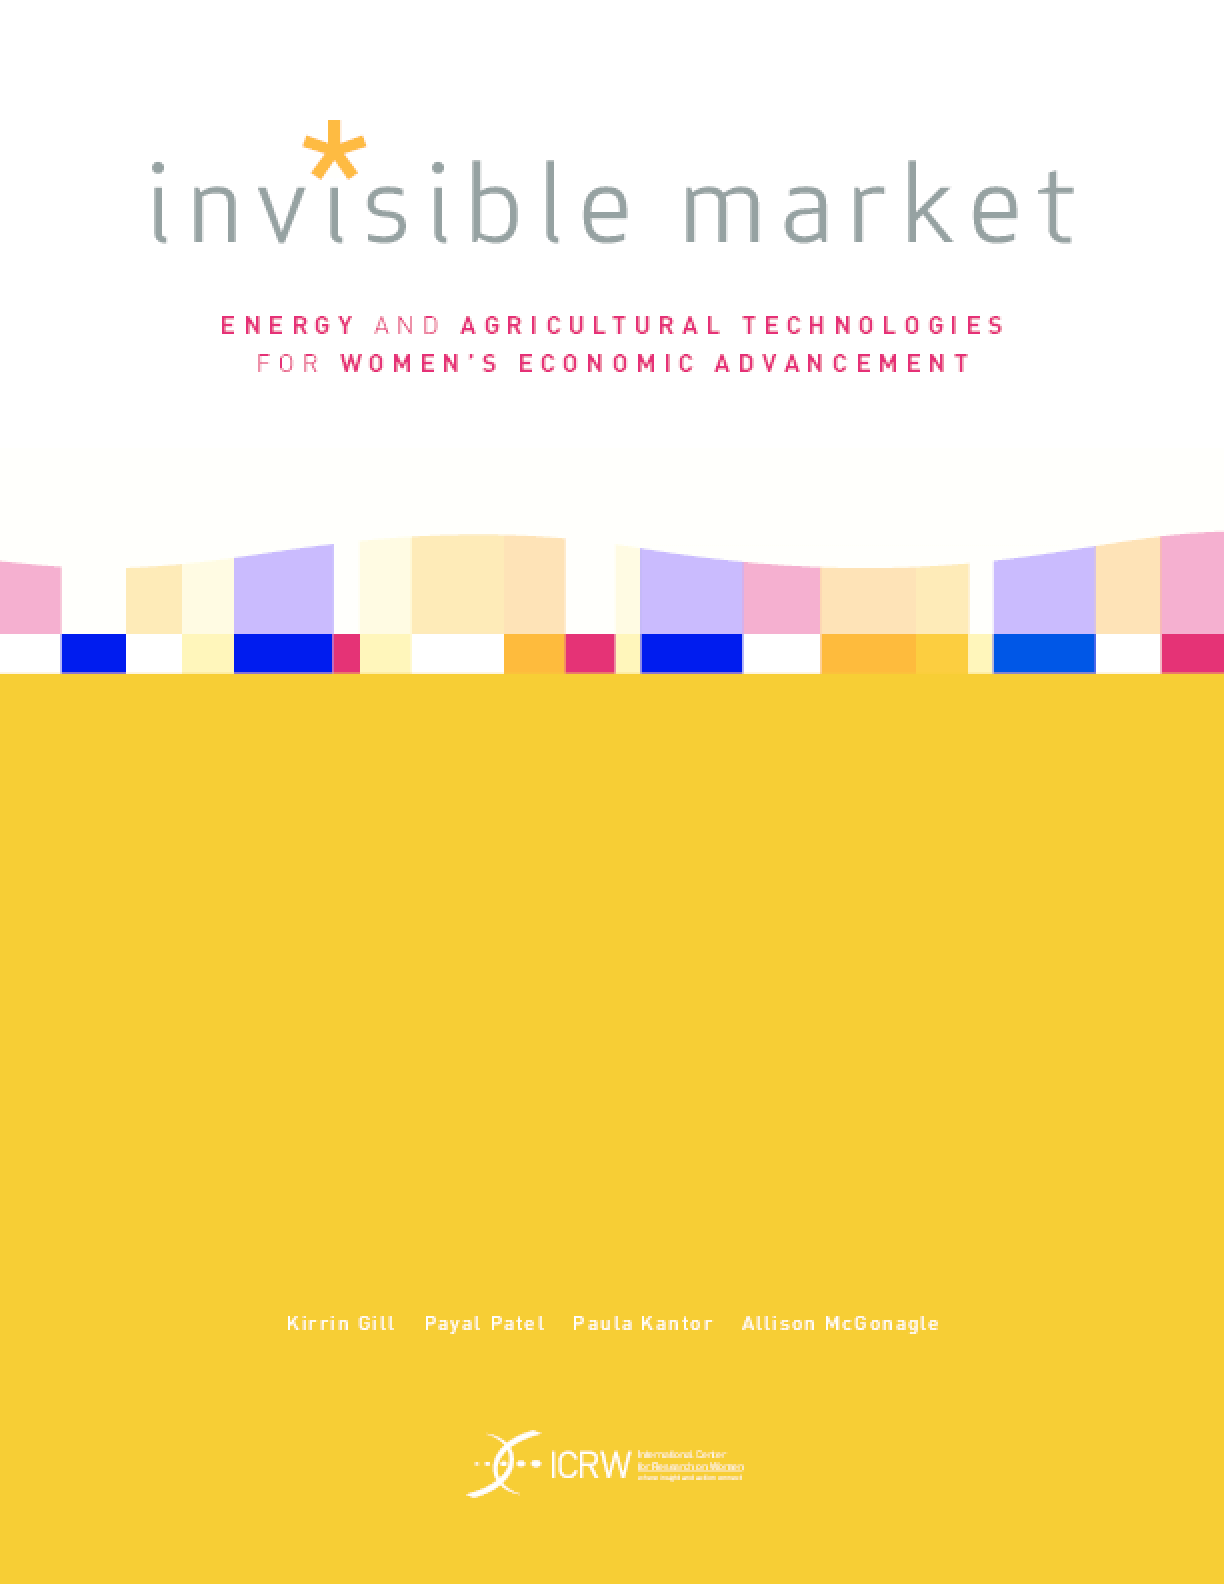 Invisible Market: Energy and Agricultural Technologies for Women's Economic Advancement